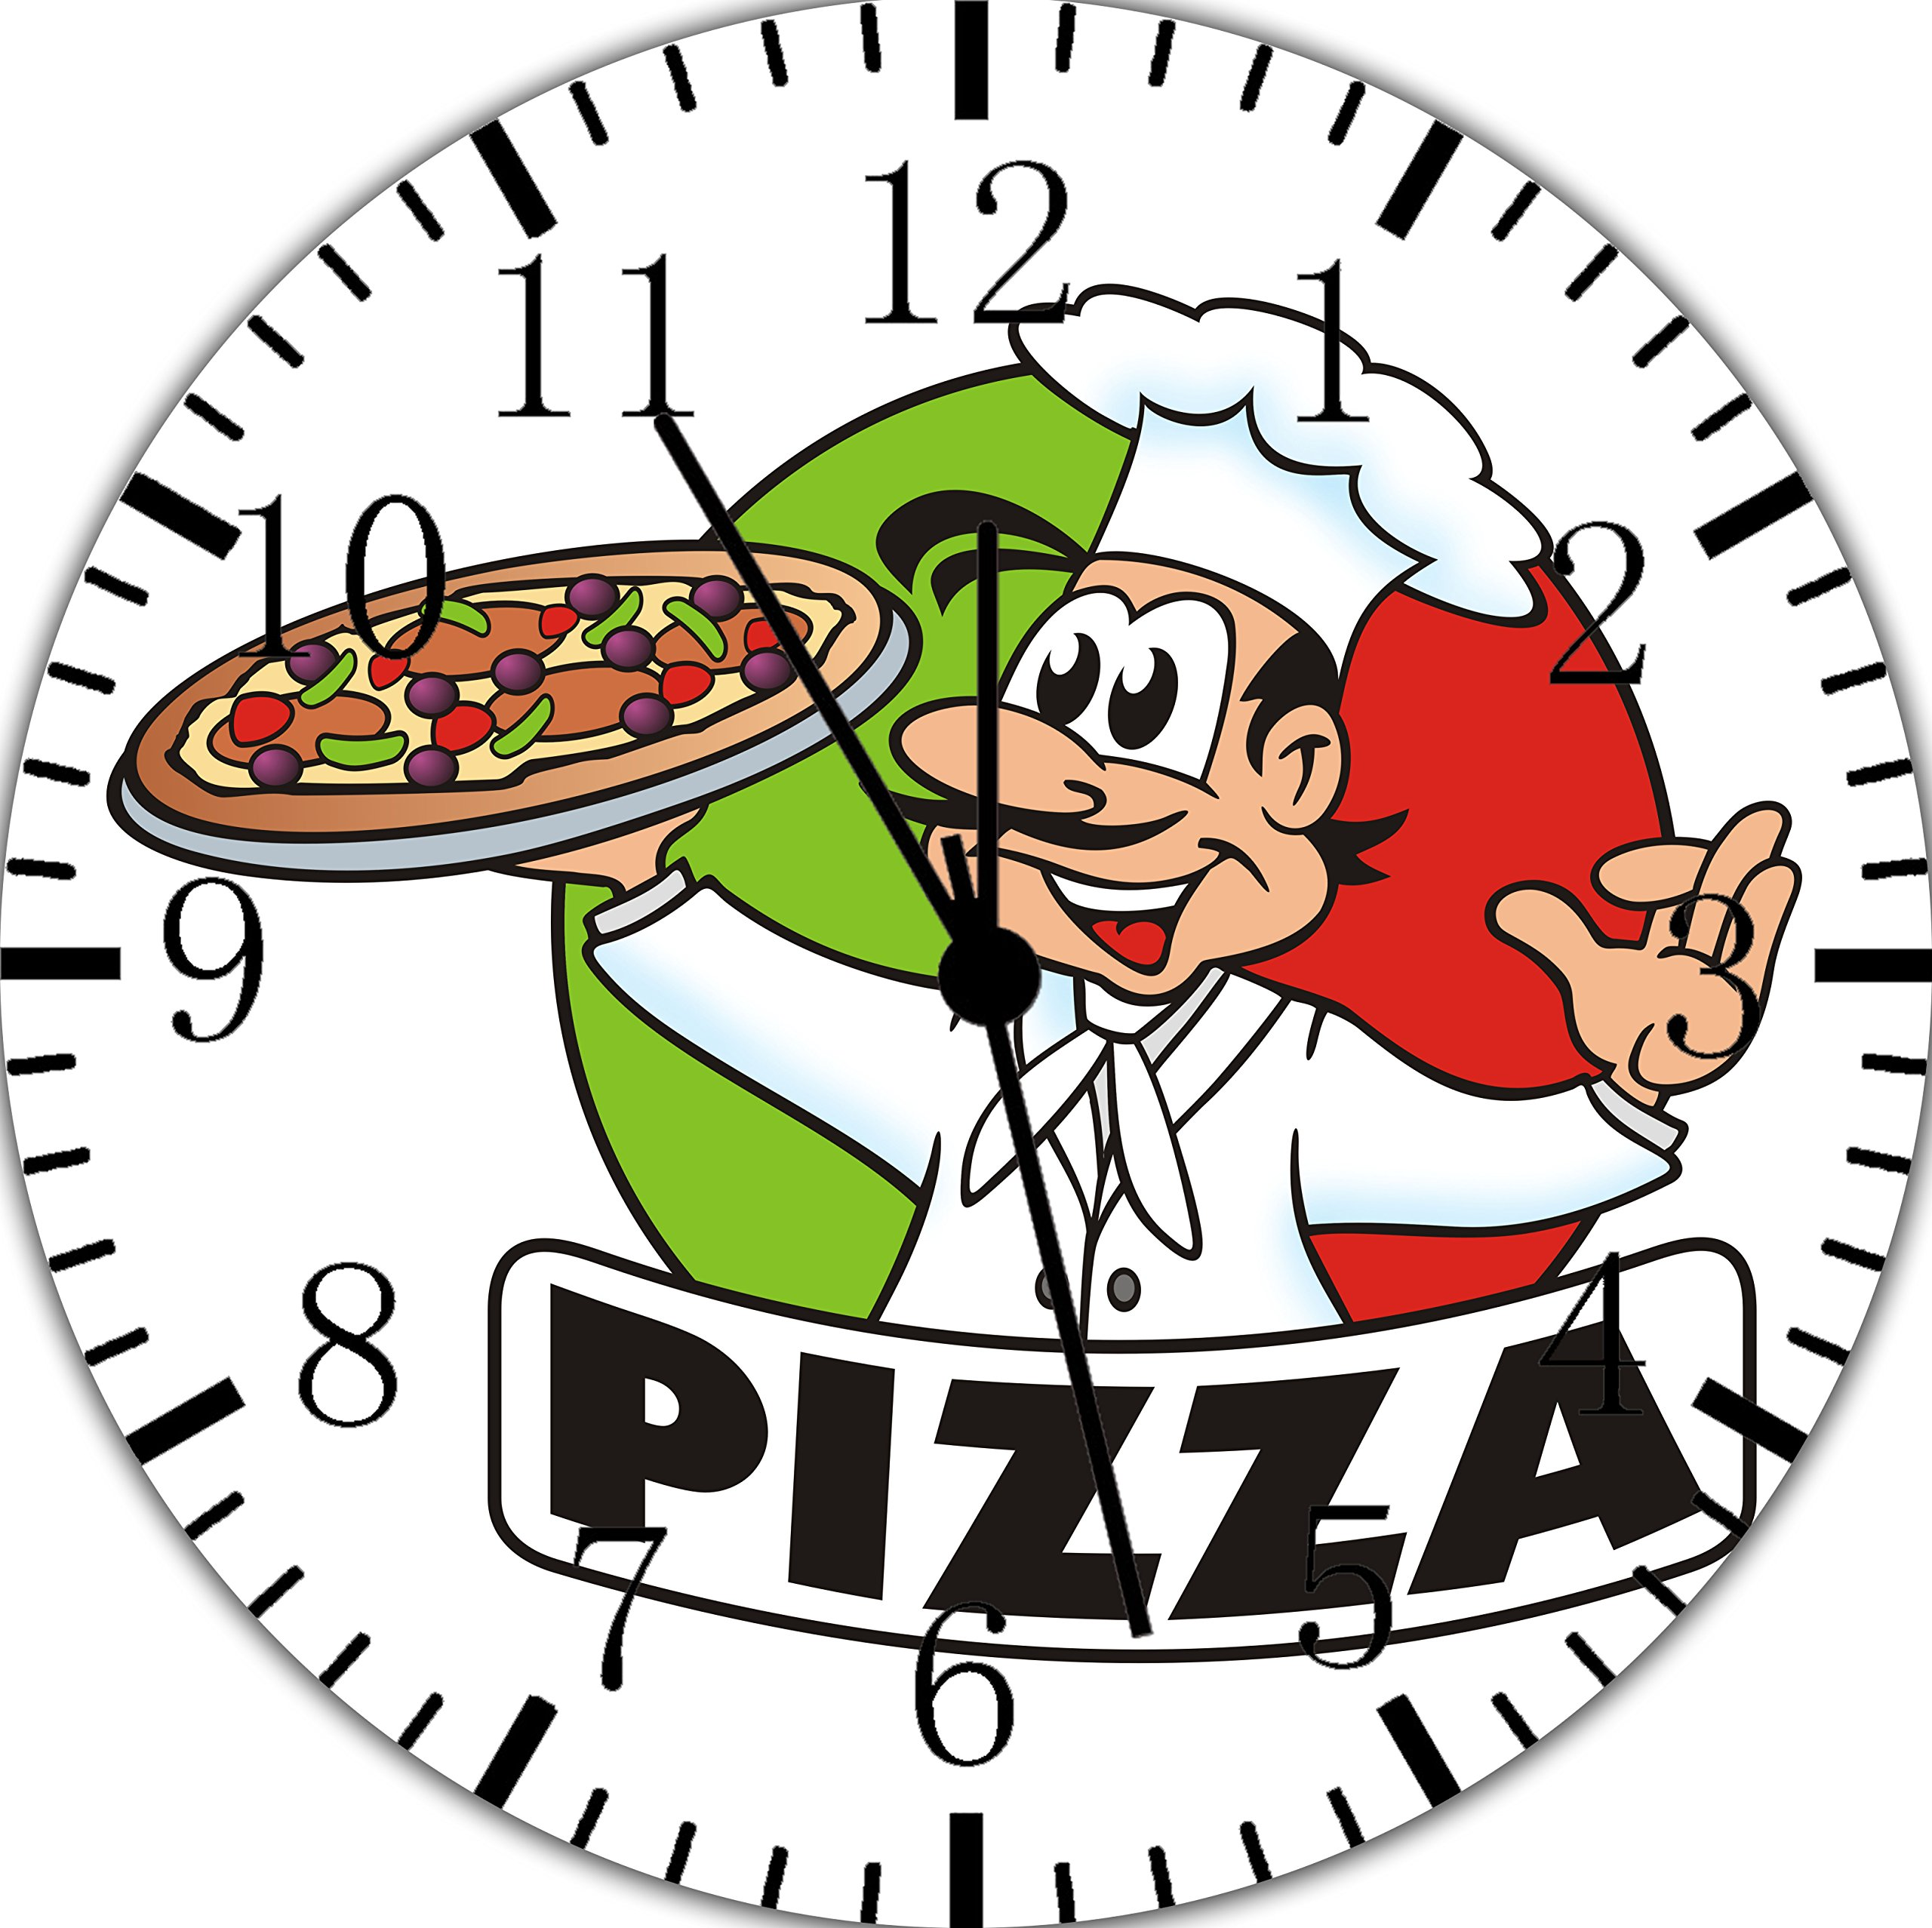 Pizza Chef Frameless Borderless Wall Clock E166 Nice For Gift or Room Wall Decor